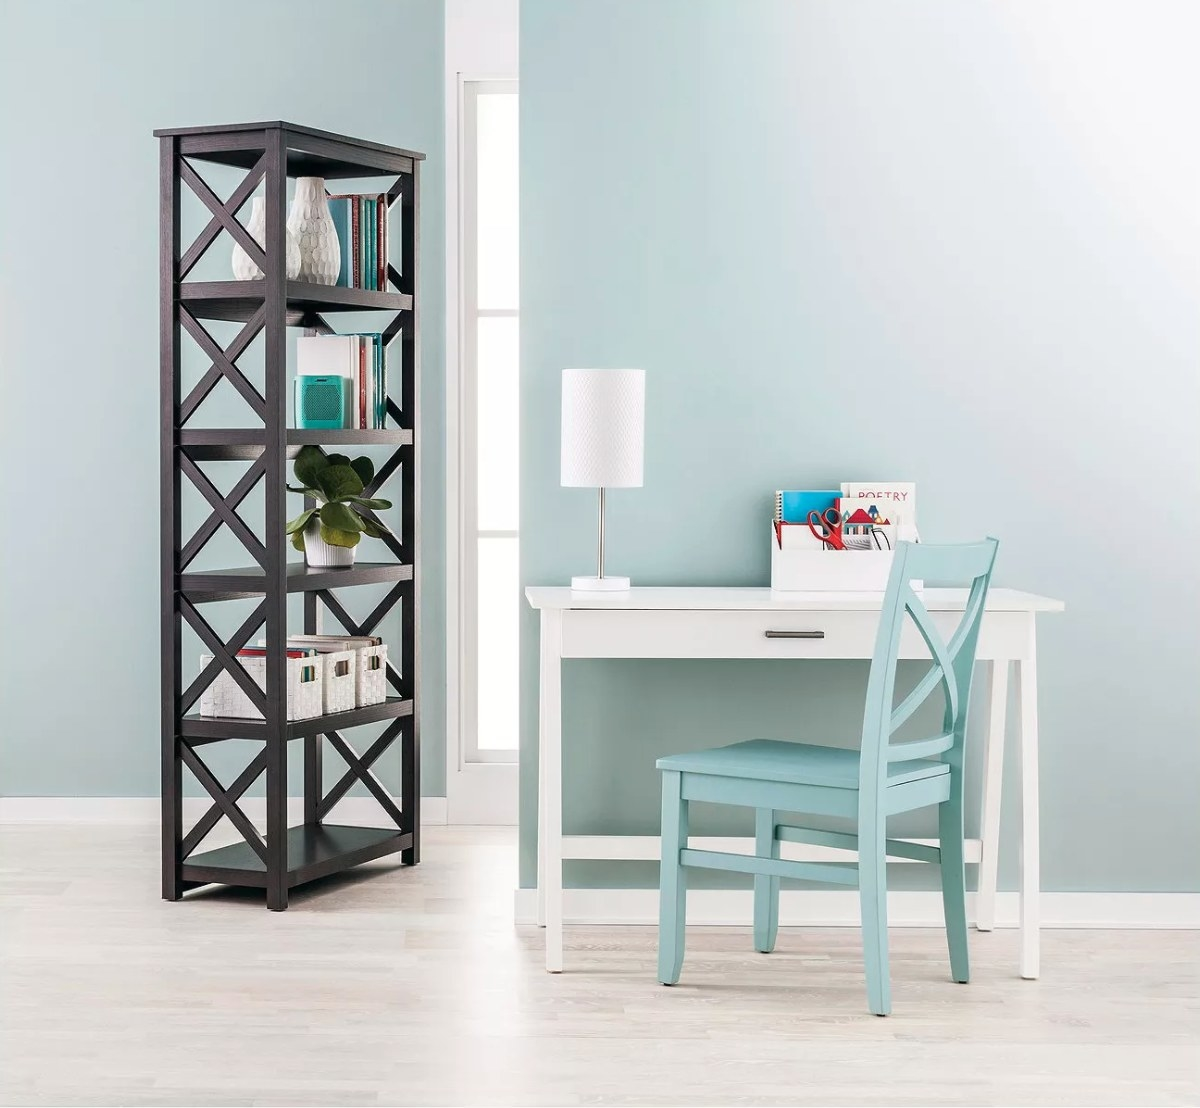 The wood writing desk in white with a large drawer next to a blue chair